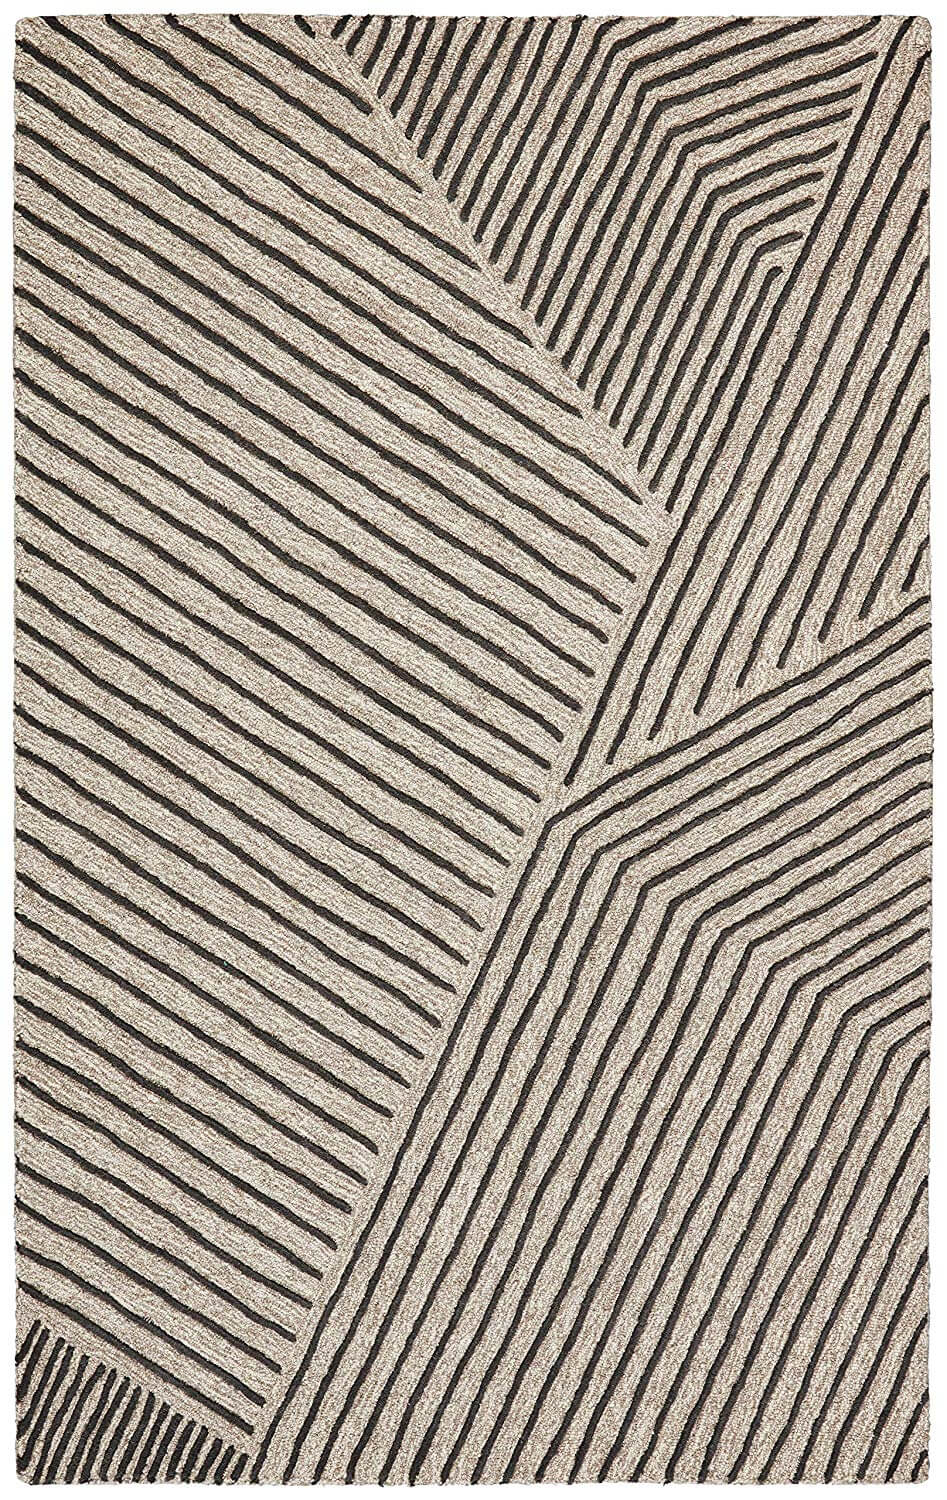 A mid-century rug with linear designs overlapping each other.